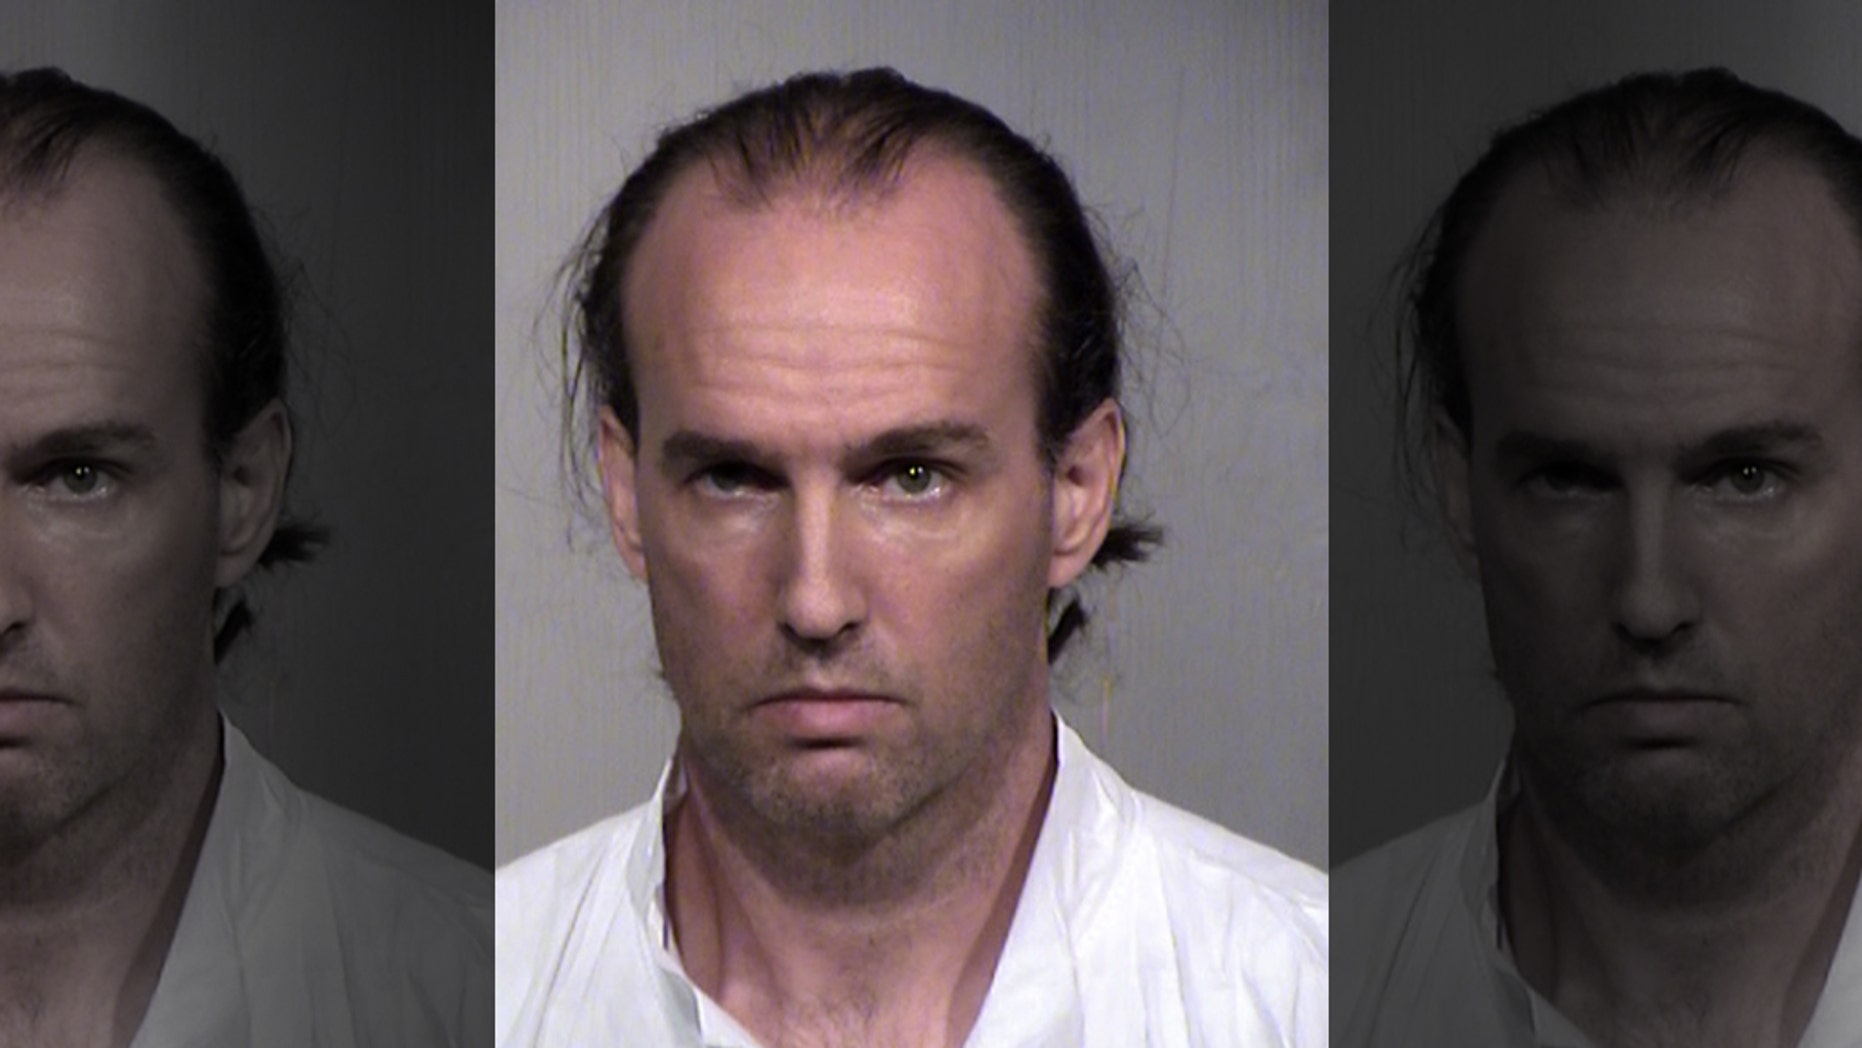 Police say a Phoenix man, 45-year-old Jonathan Conaway, accused of killing his wife told officers his spouse had become a burden after she suffered a stroke. (Maricopa County Sheriff's Office)